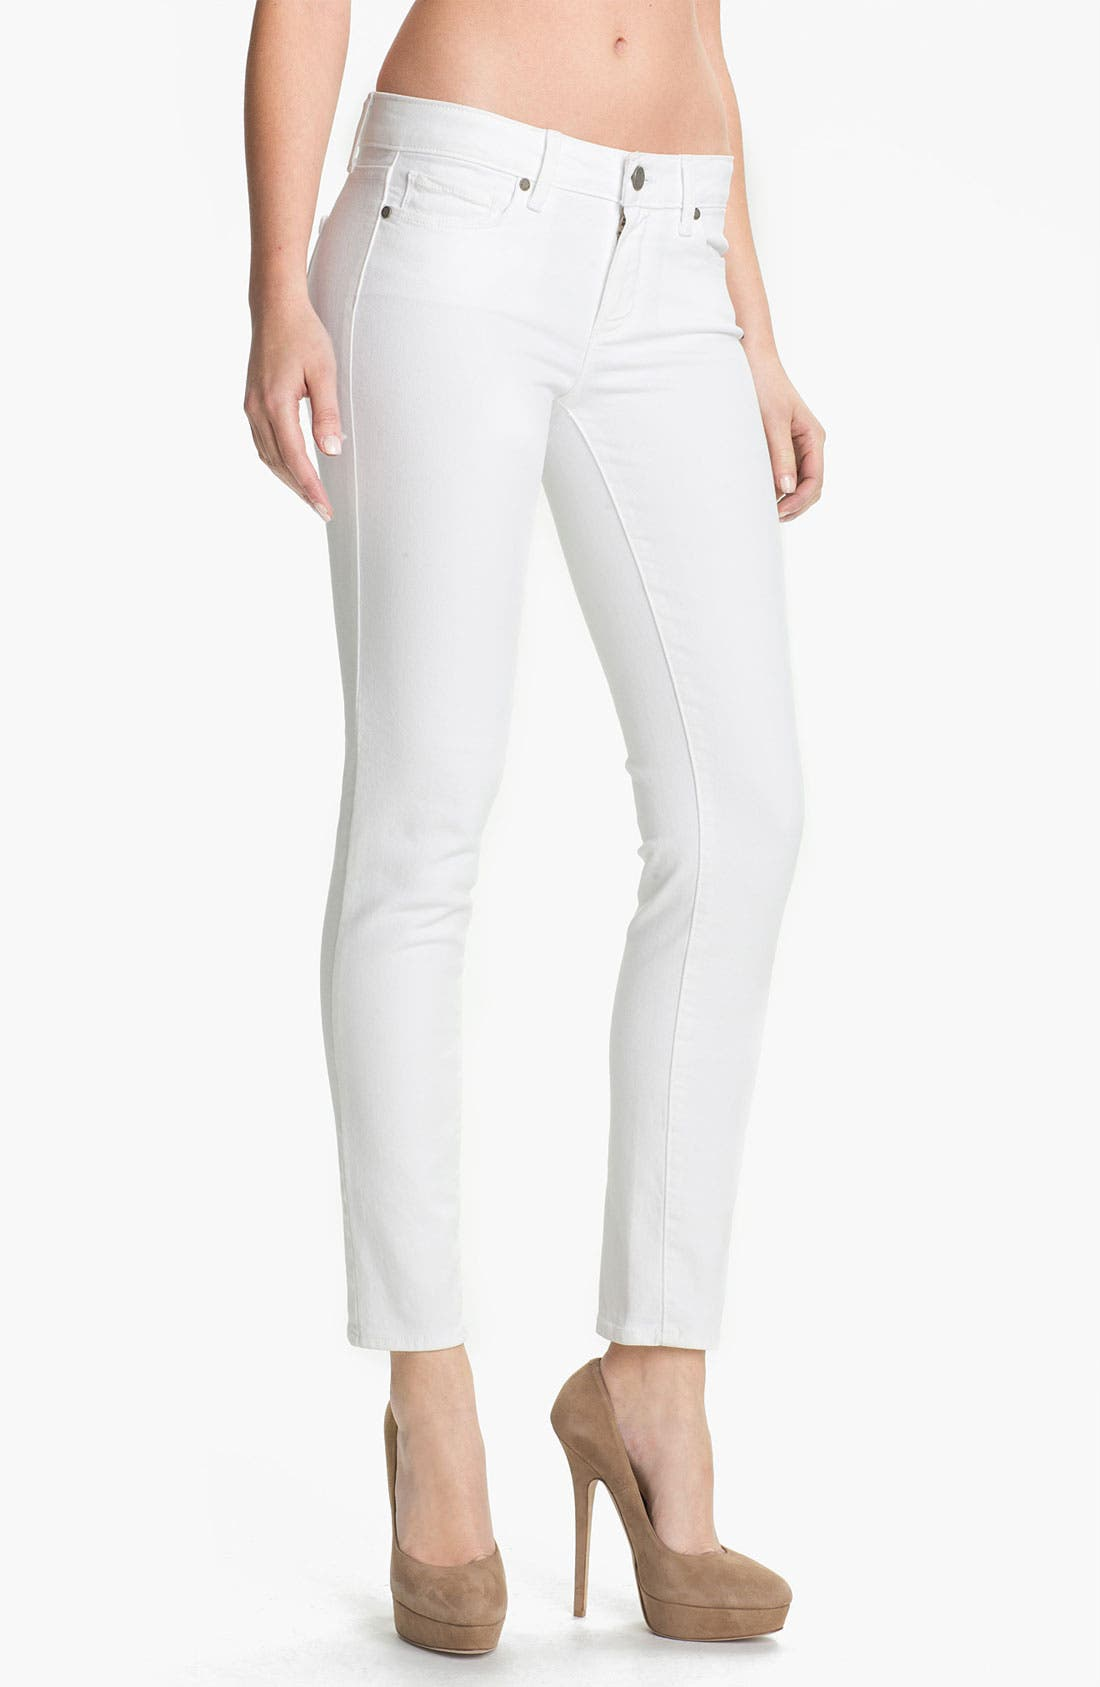 Main Image - PAIGE 'Skyline' Ankle Peg Skinny Jeans (Optic White)